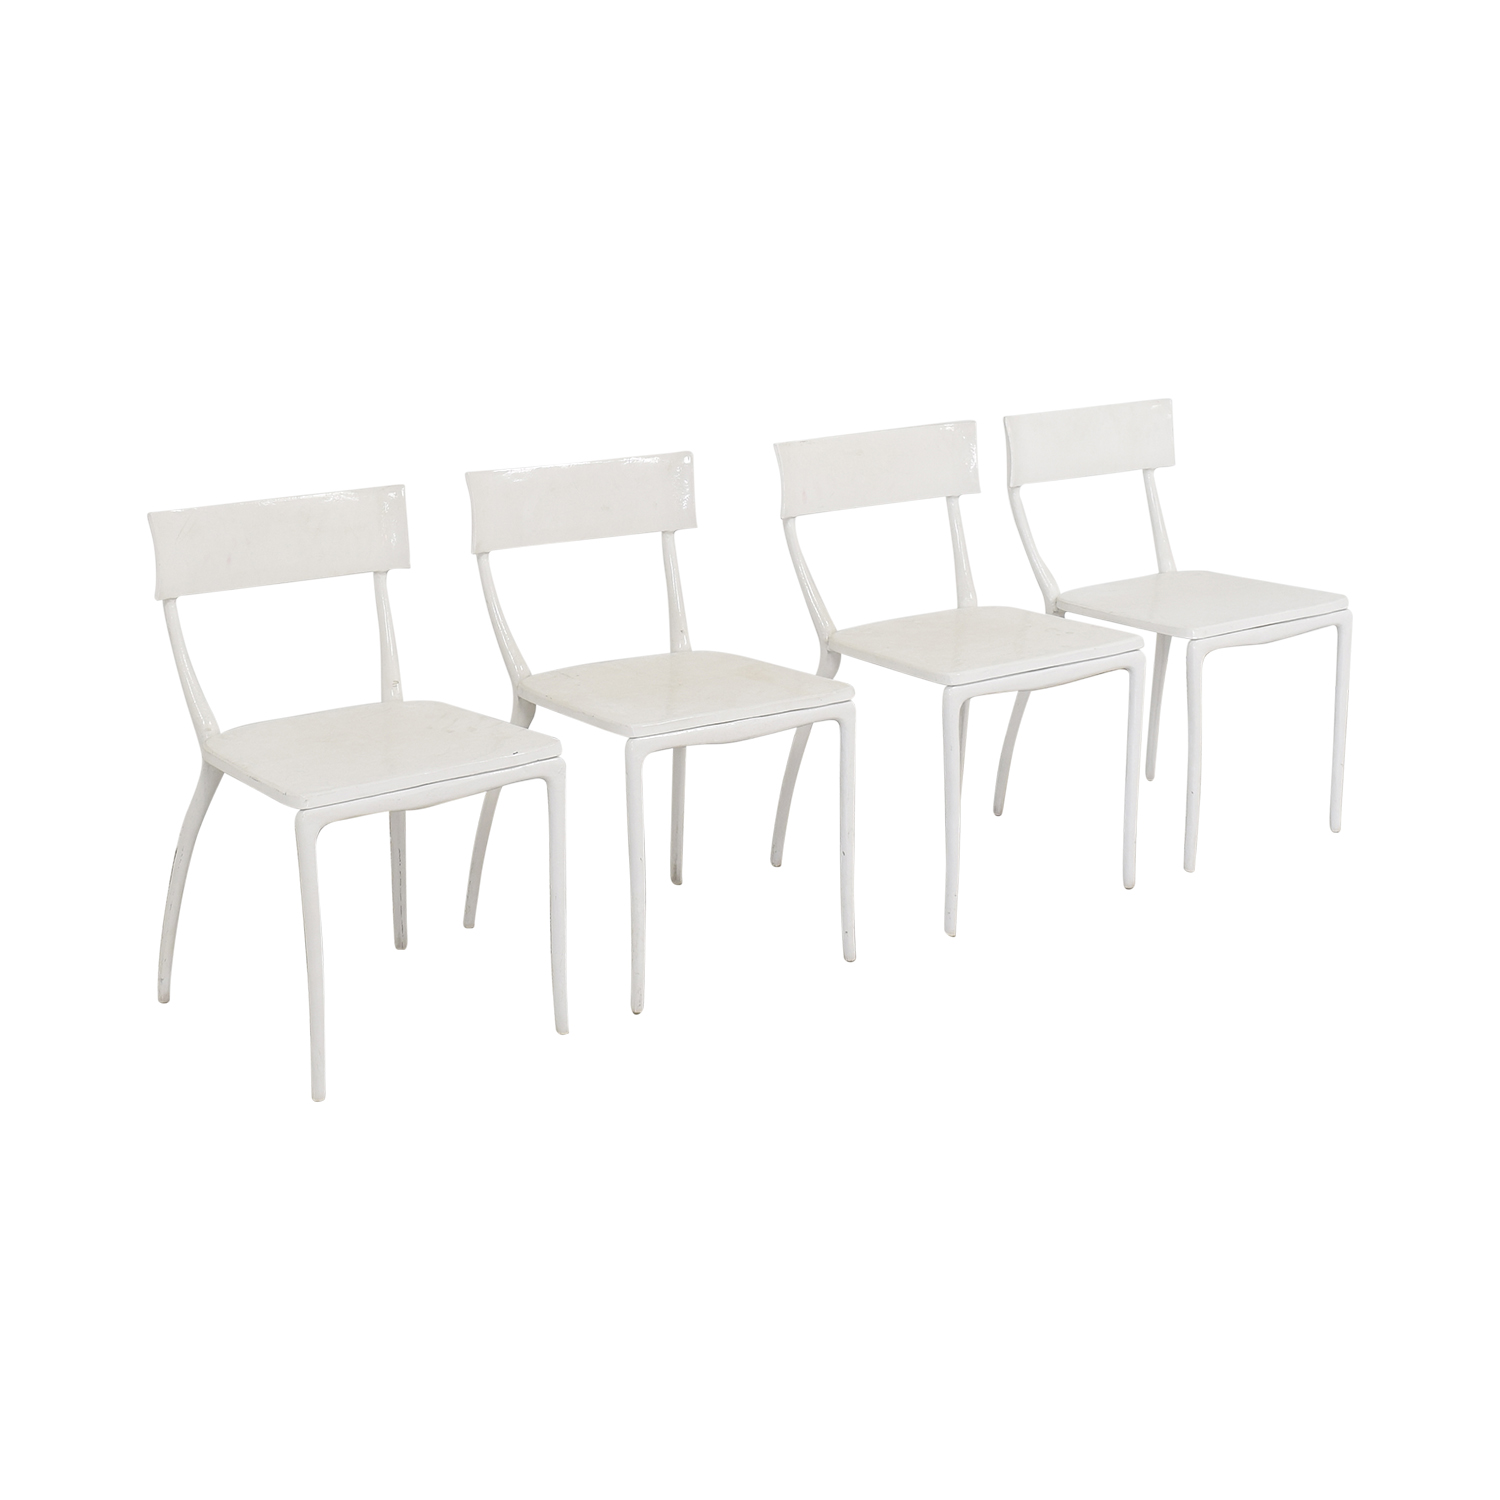 CB2 CB2 Midas White Dining Chairs second hand